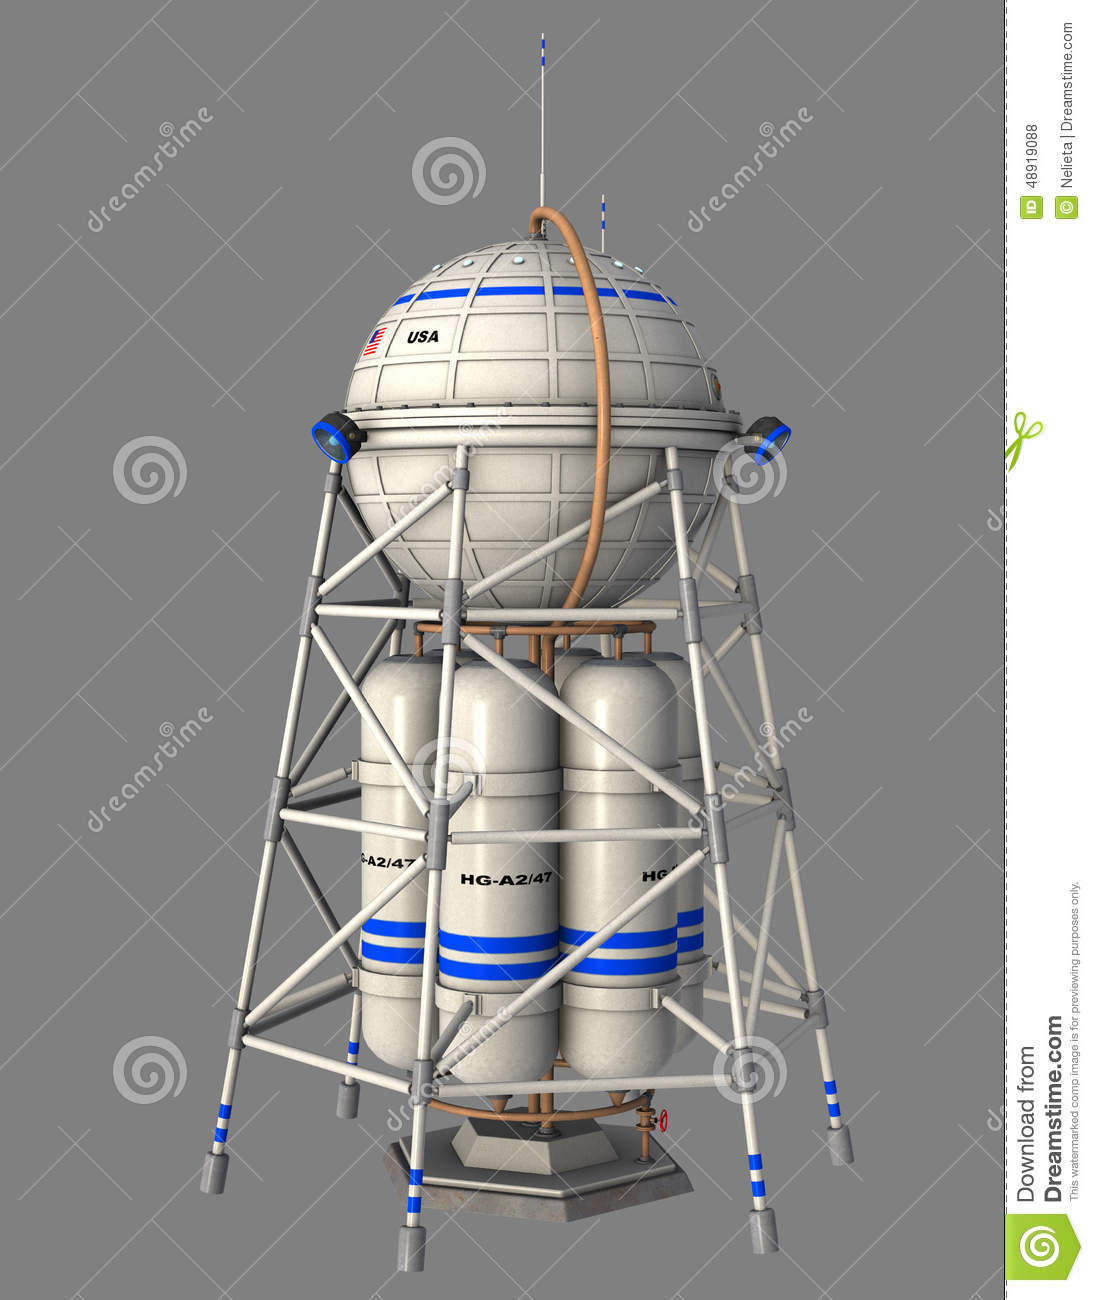 Usa space station stock illustration image 48919088 for Space station usa